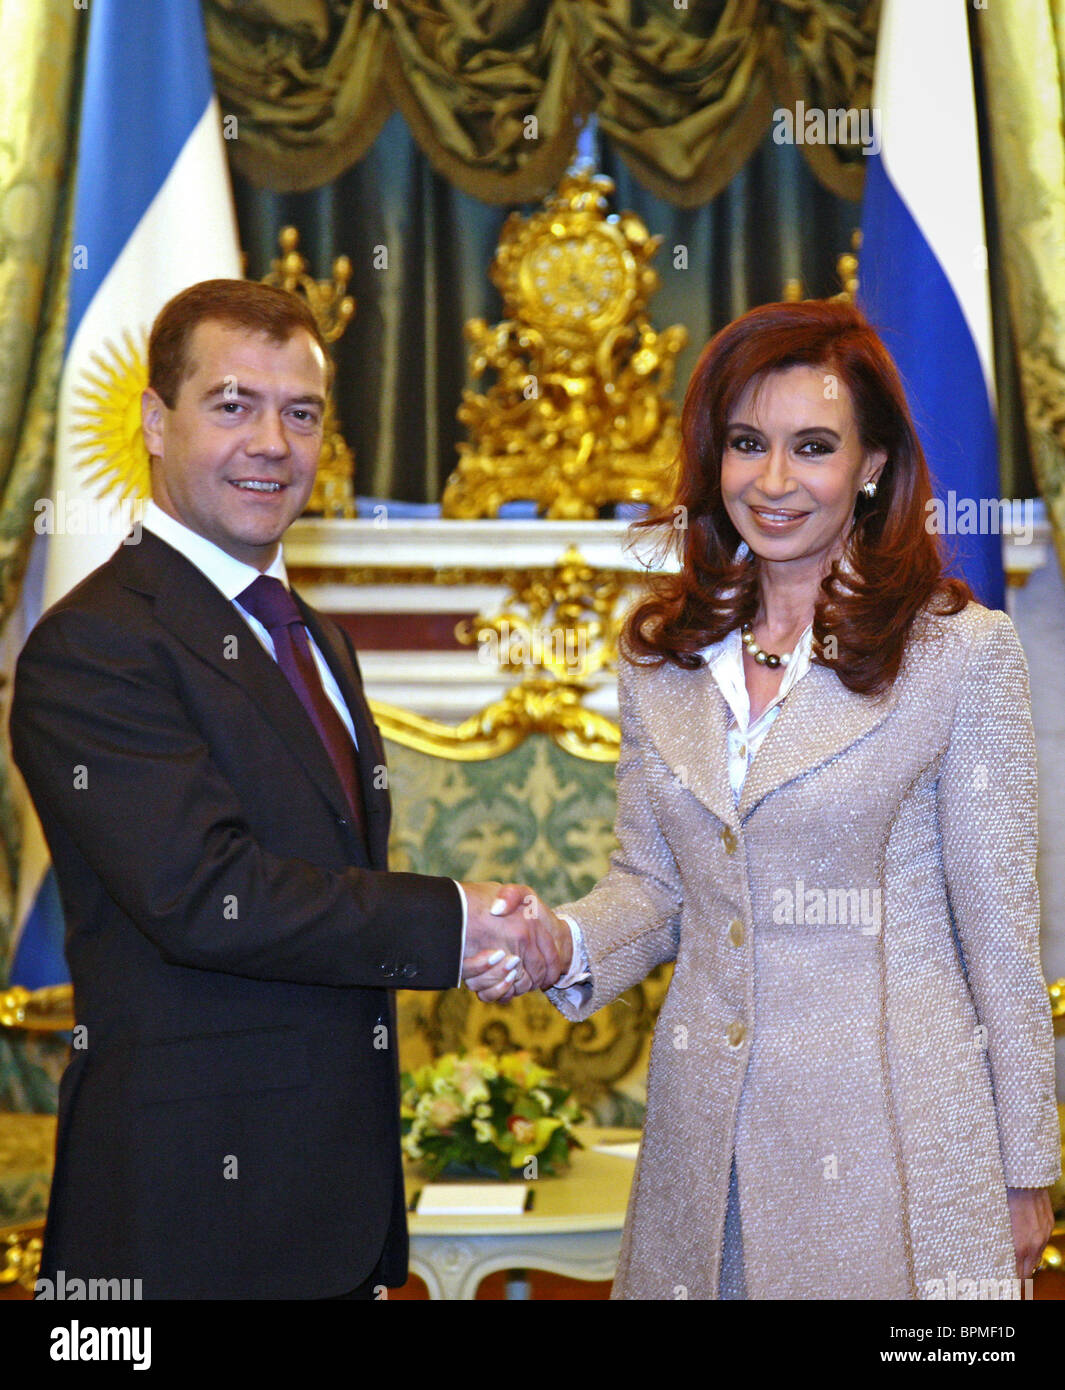 President of Russia and president of Argentina meet for talks - Stock Image